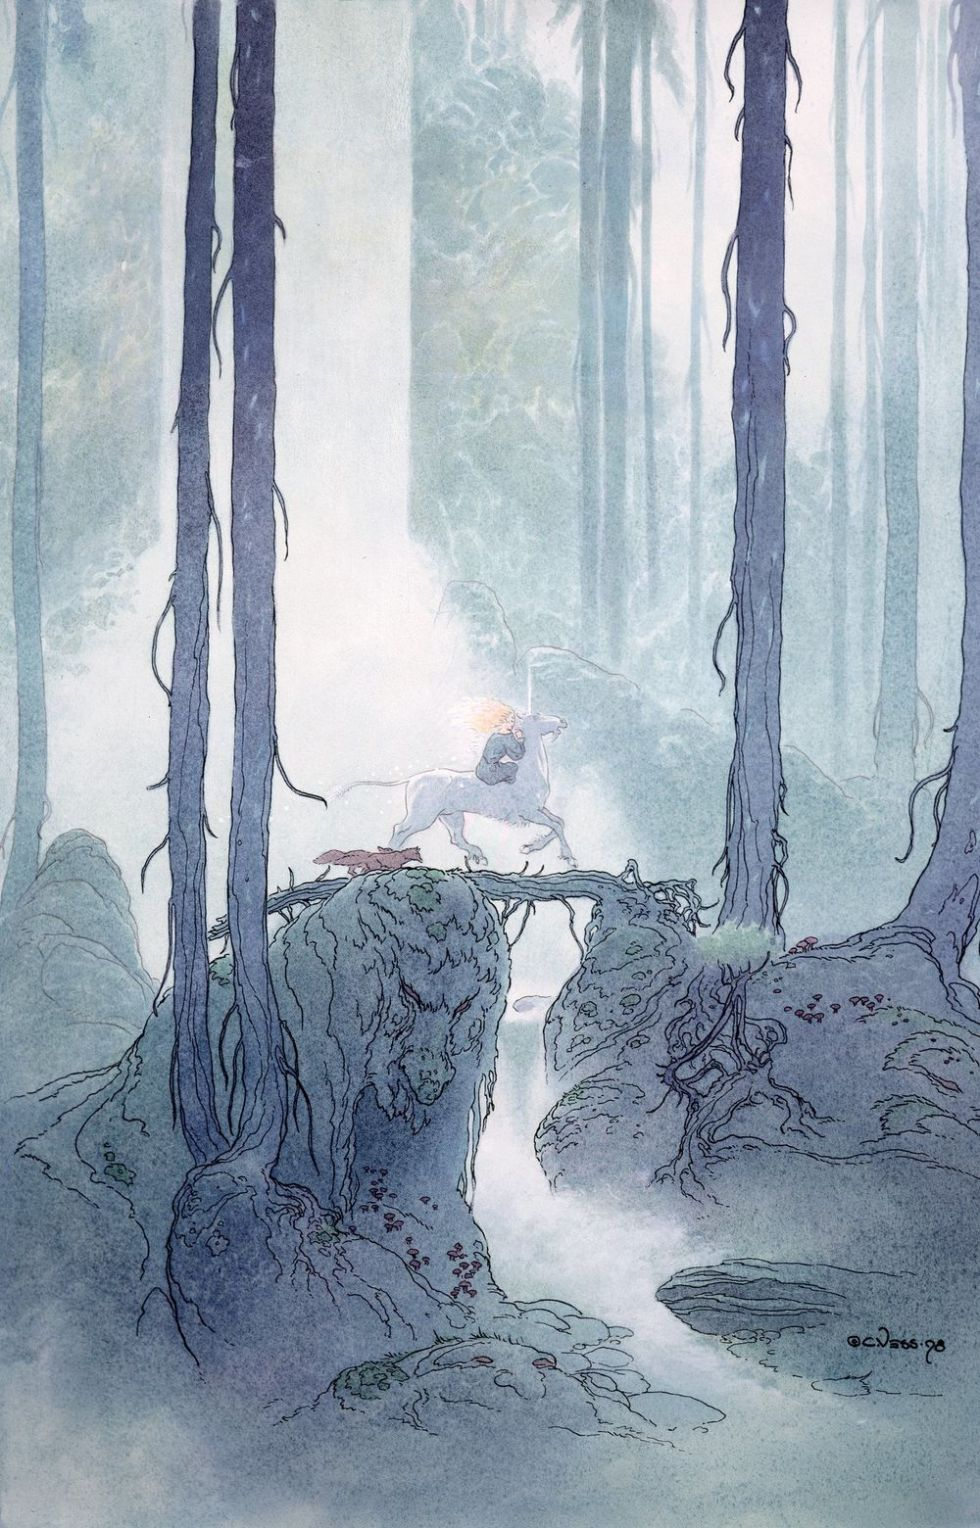 charles vess - in the deep wood